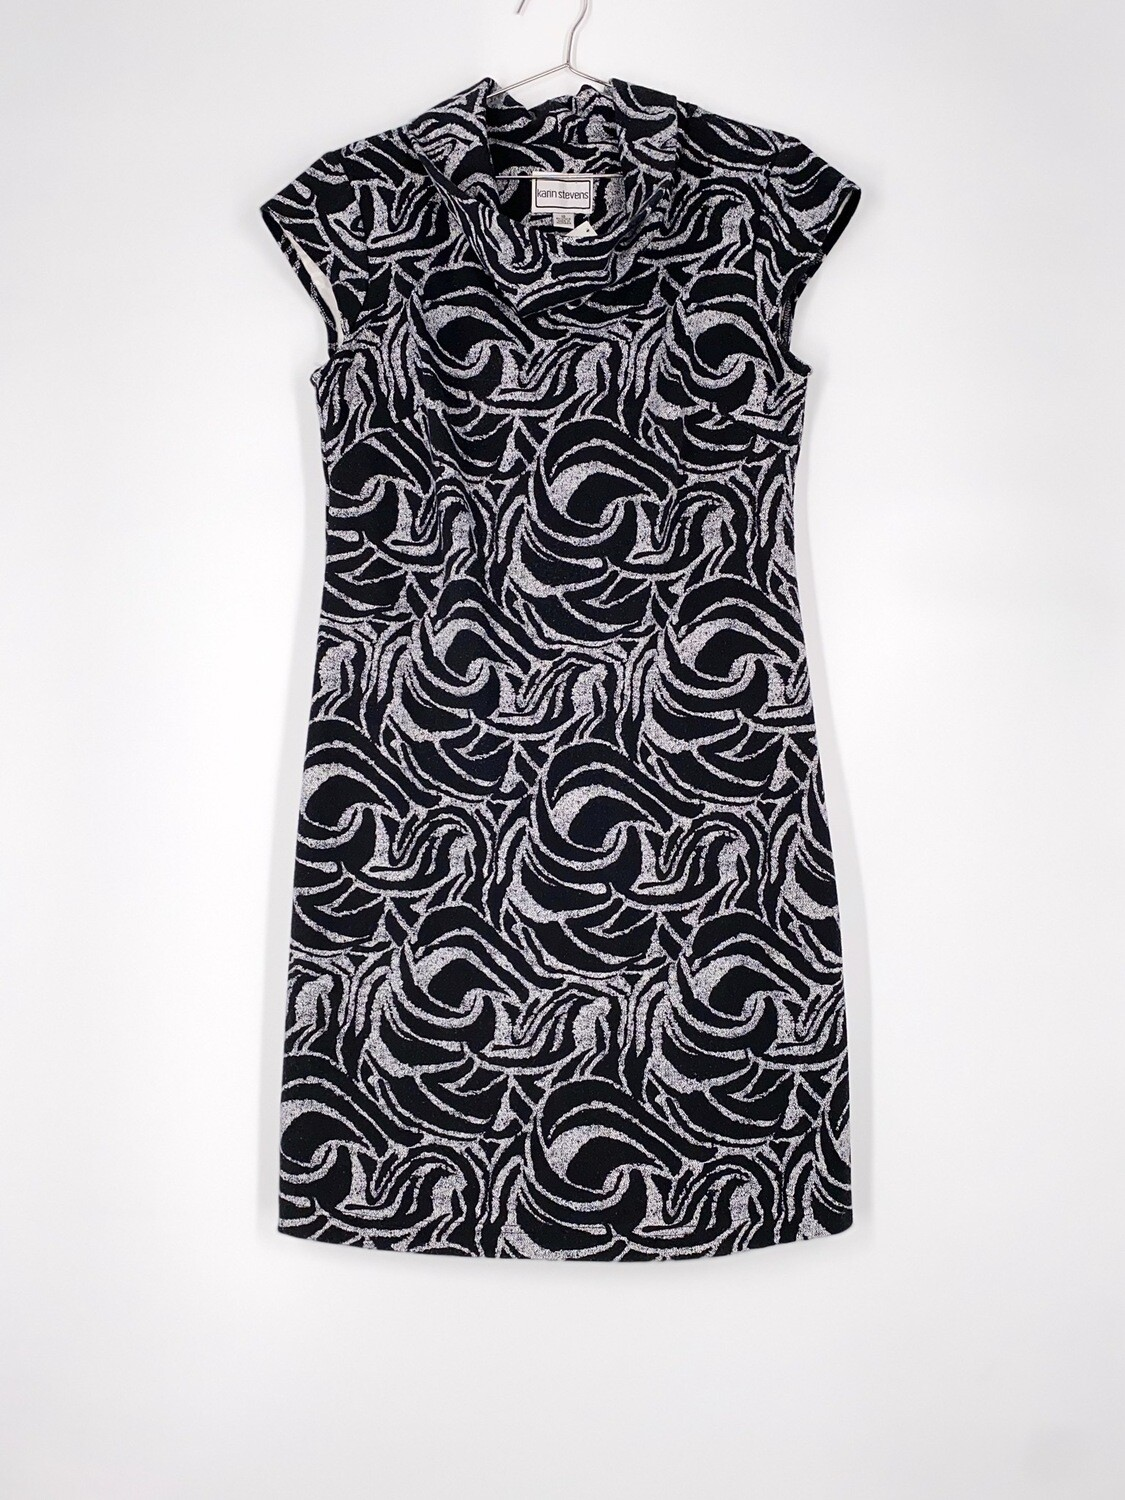 Cowl Neck Printed Dress Size M